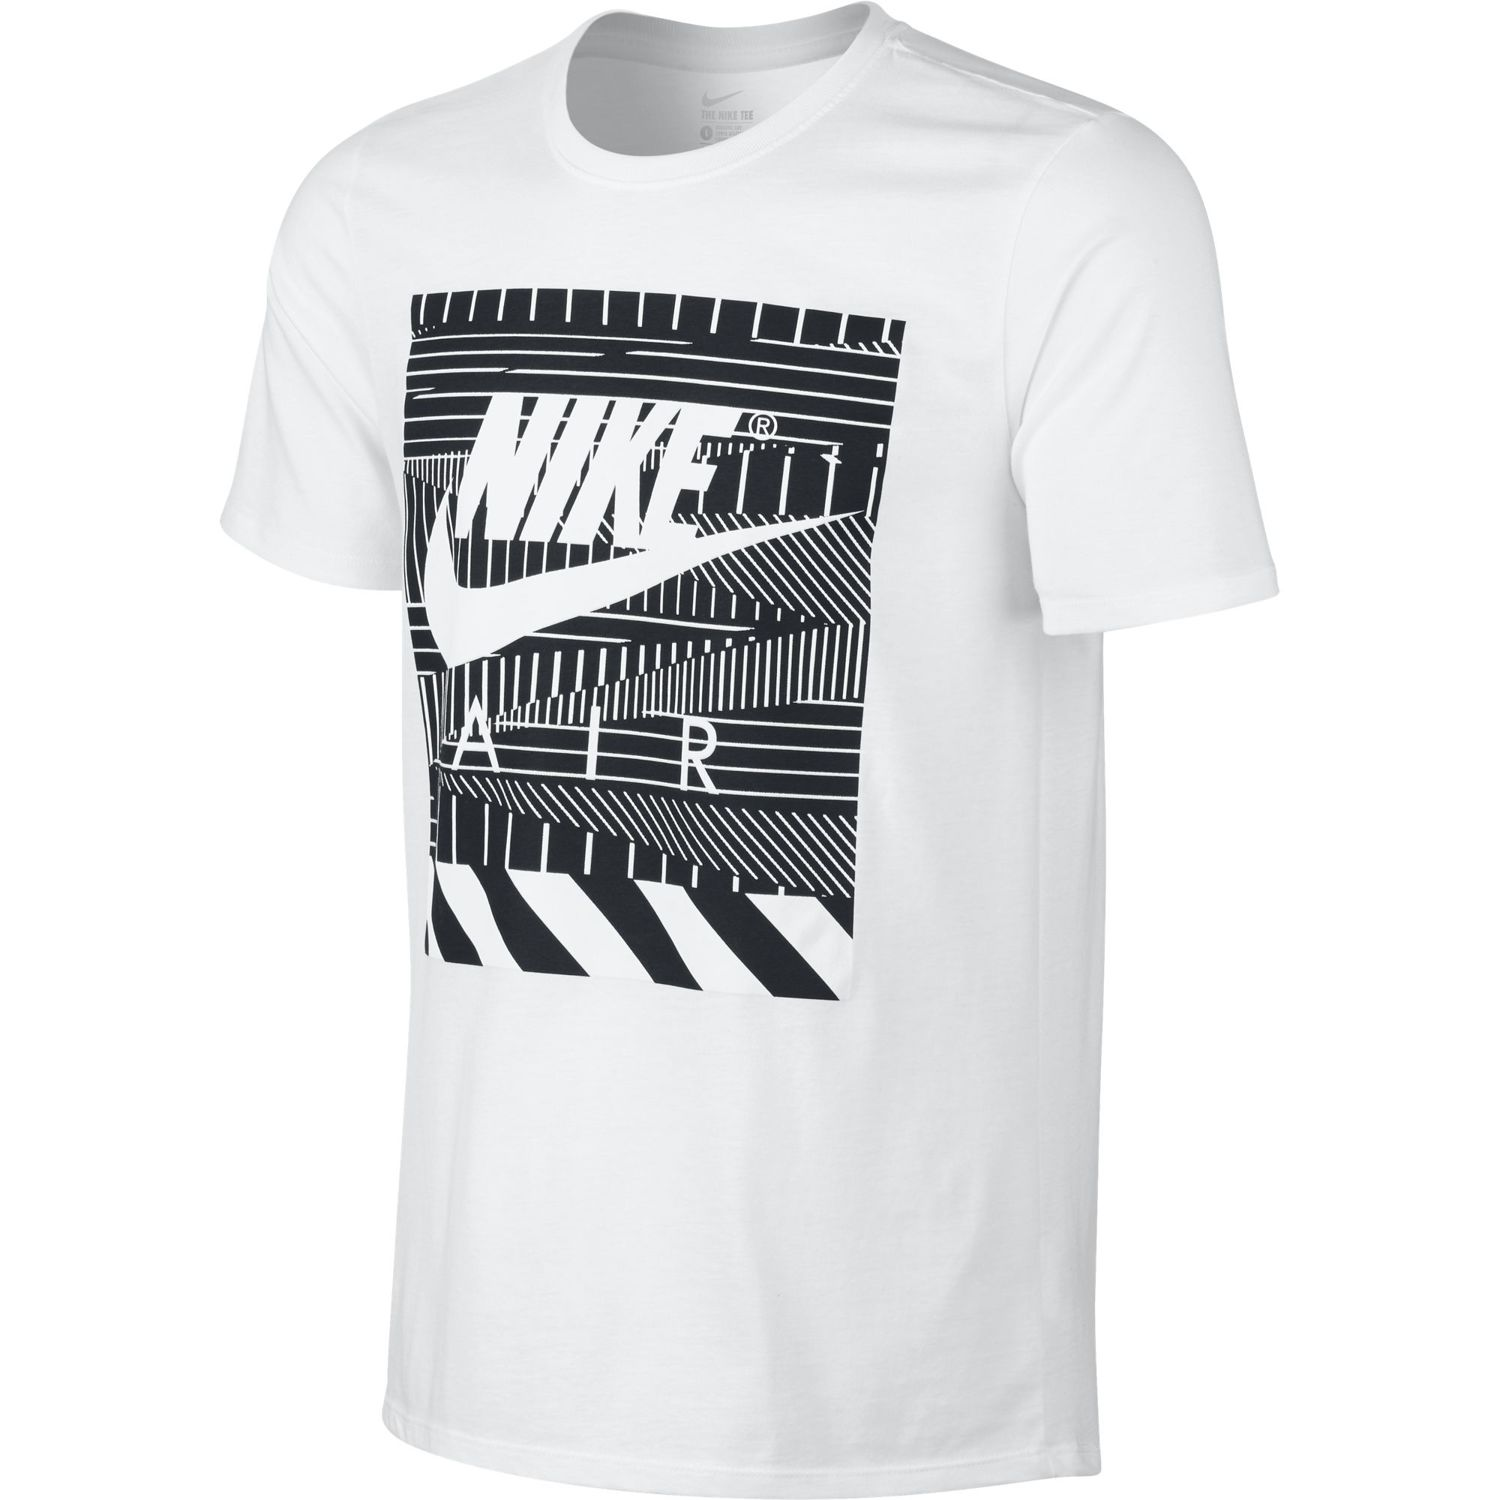 t shirt nike air tee stretcher print 843388 100 sneaker shop. Black Bedroom Furniture Sets. Home Design Ideas